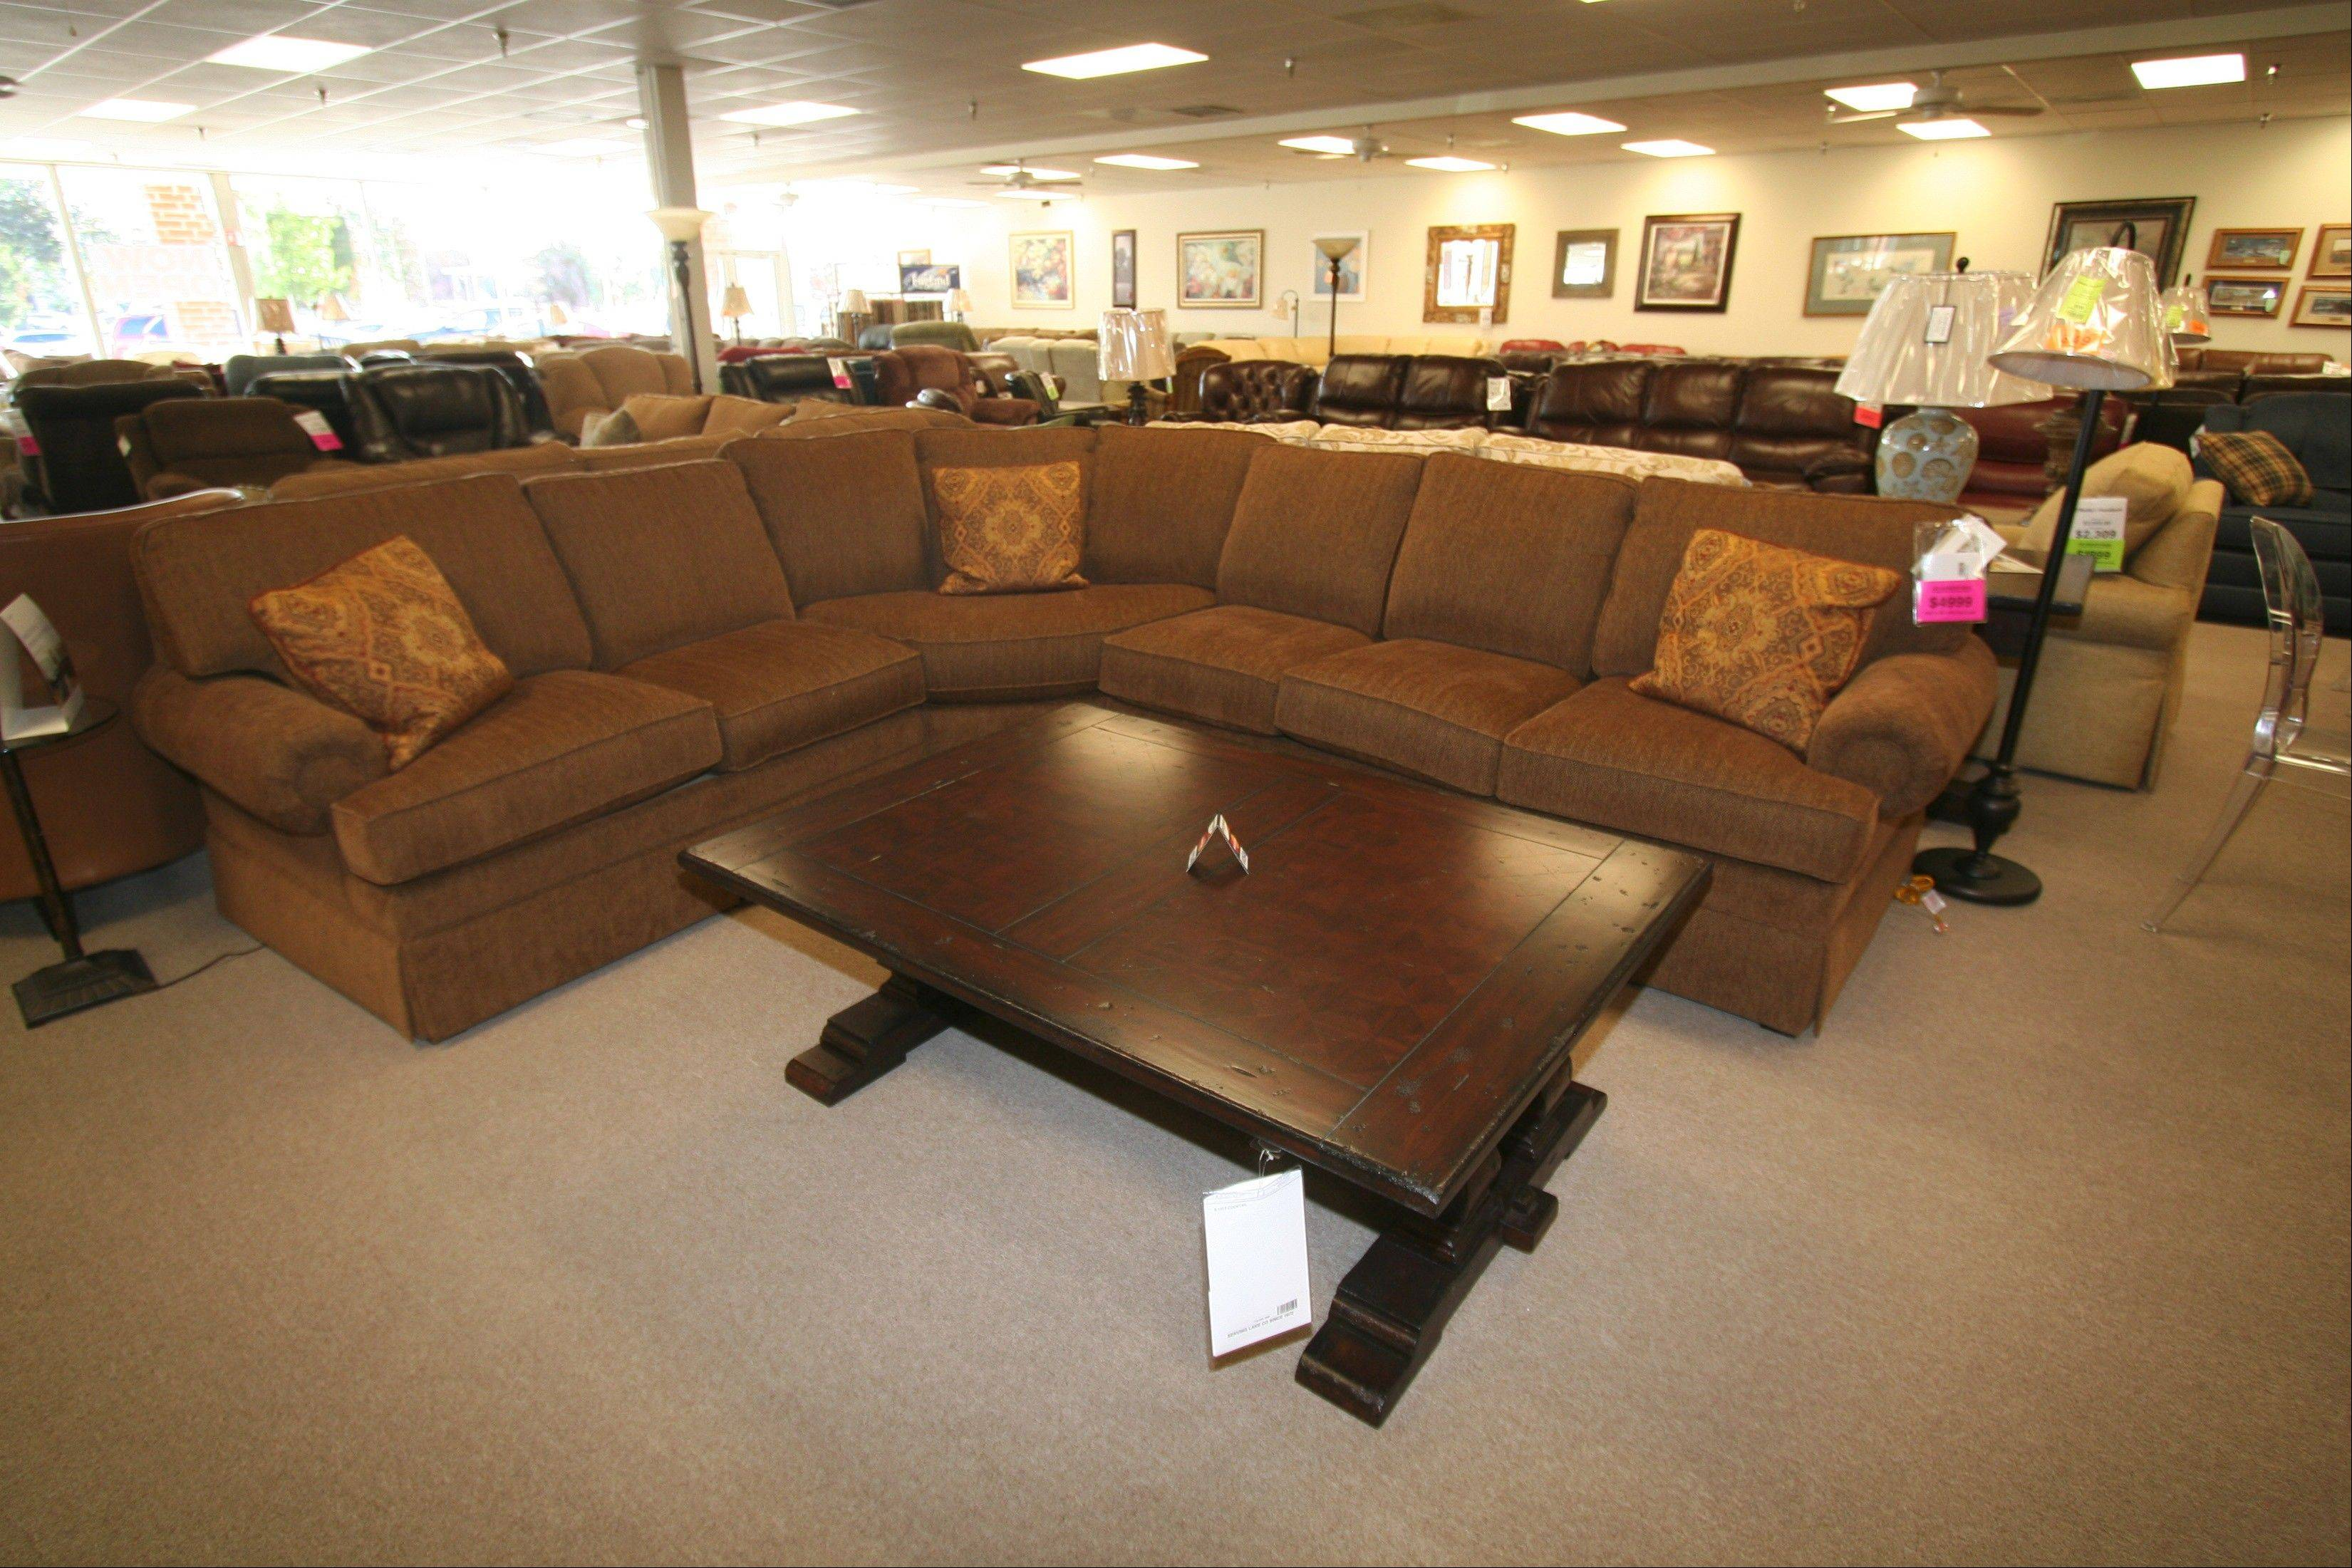 O'Reilly's Furniture recommends a nice, comfy sectional, such as this Taylor King three-piece sectional, along with a cocktail table to freshen up Kim King's family room.